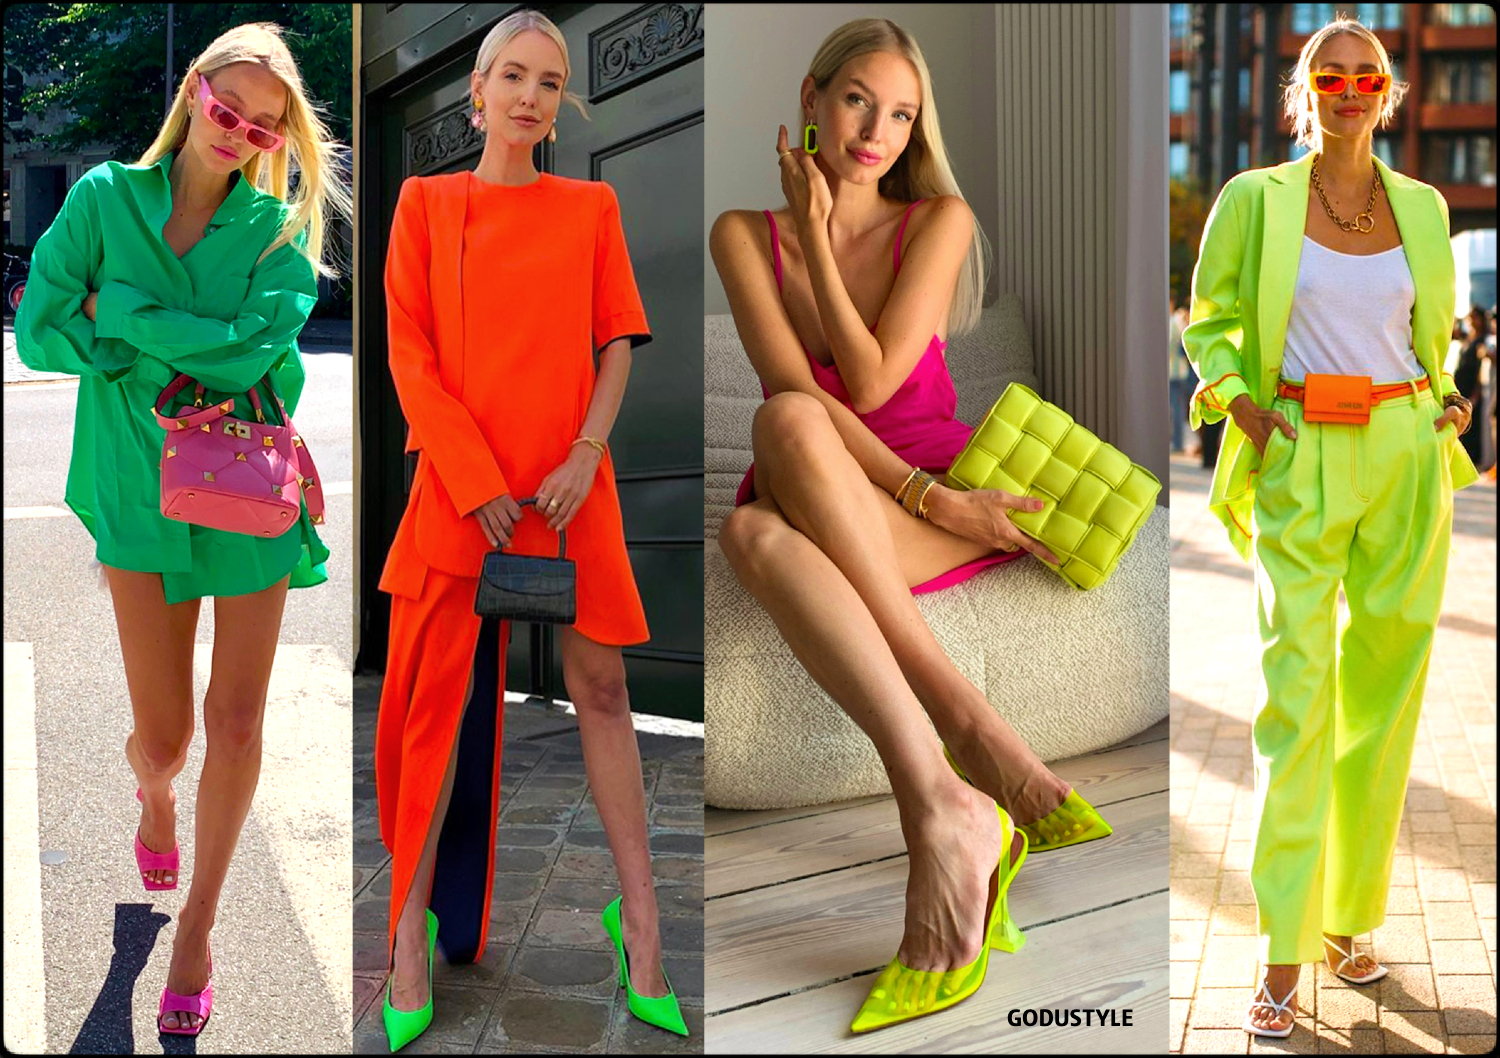 neon-color-fashion-accessories-trend-leonie-hanne-look-street-style-details-2021-2022-shopping-moda-godustyle